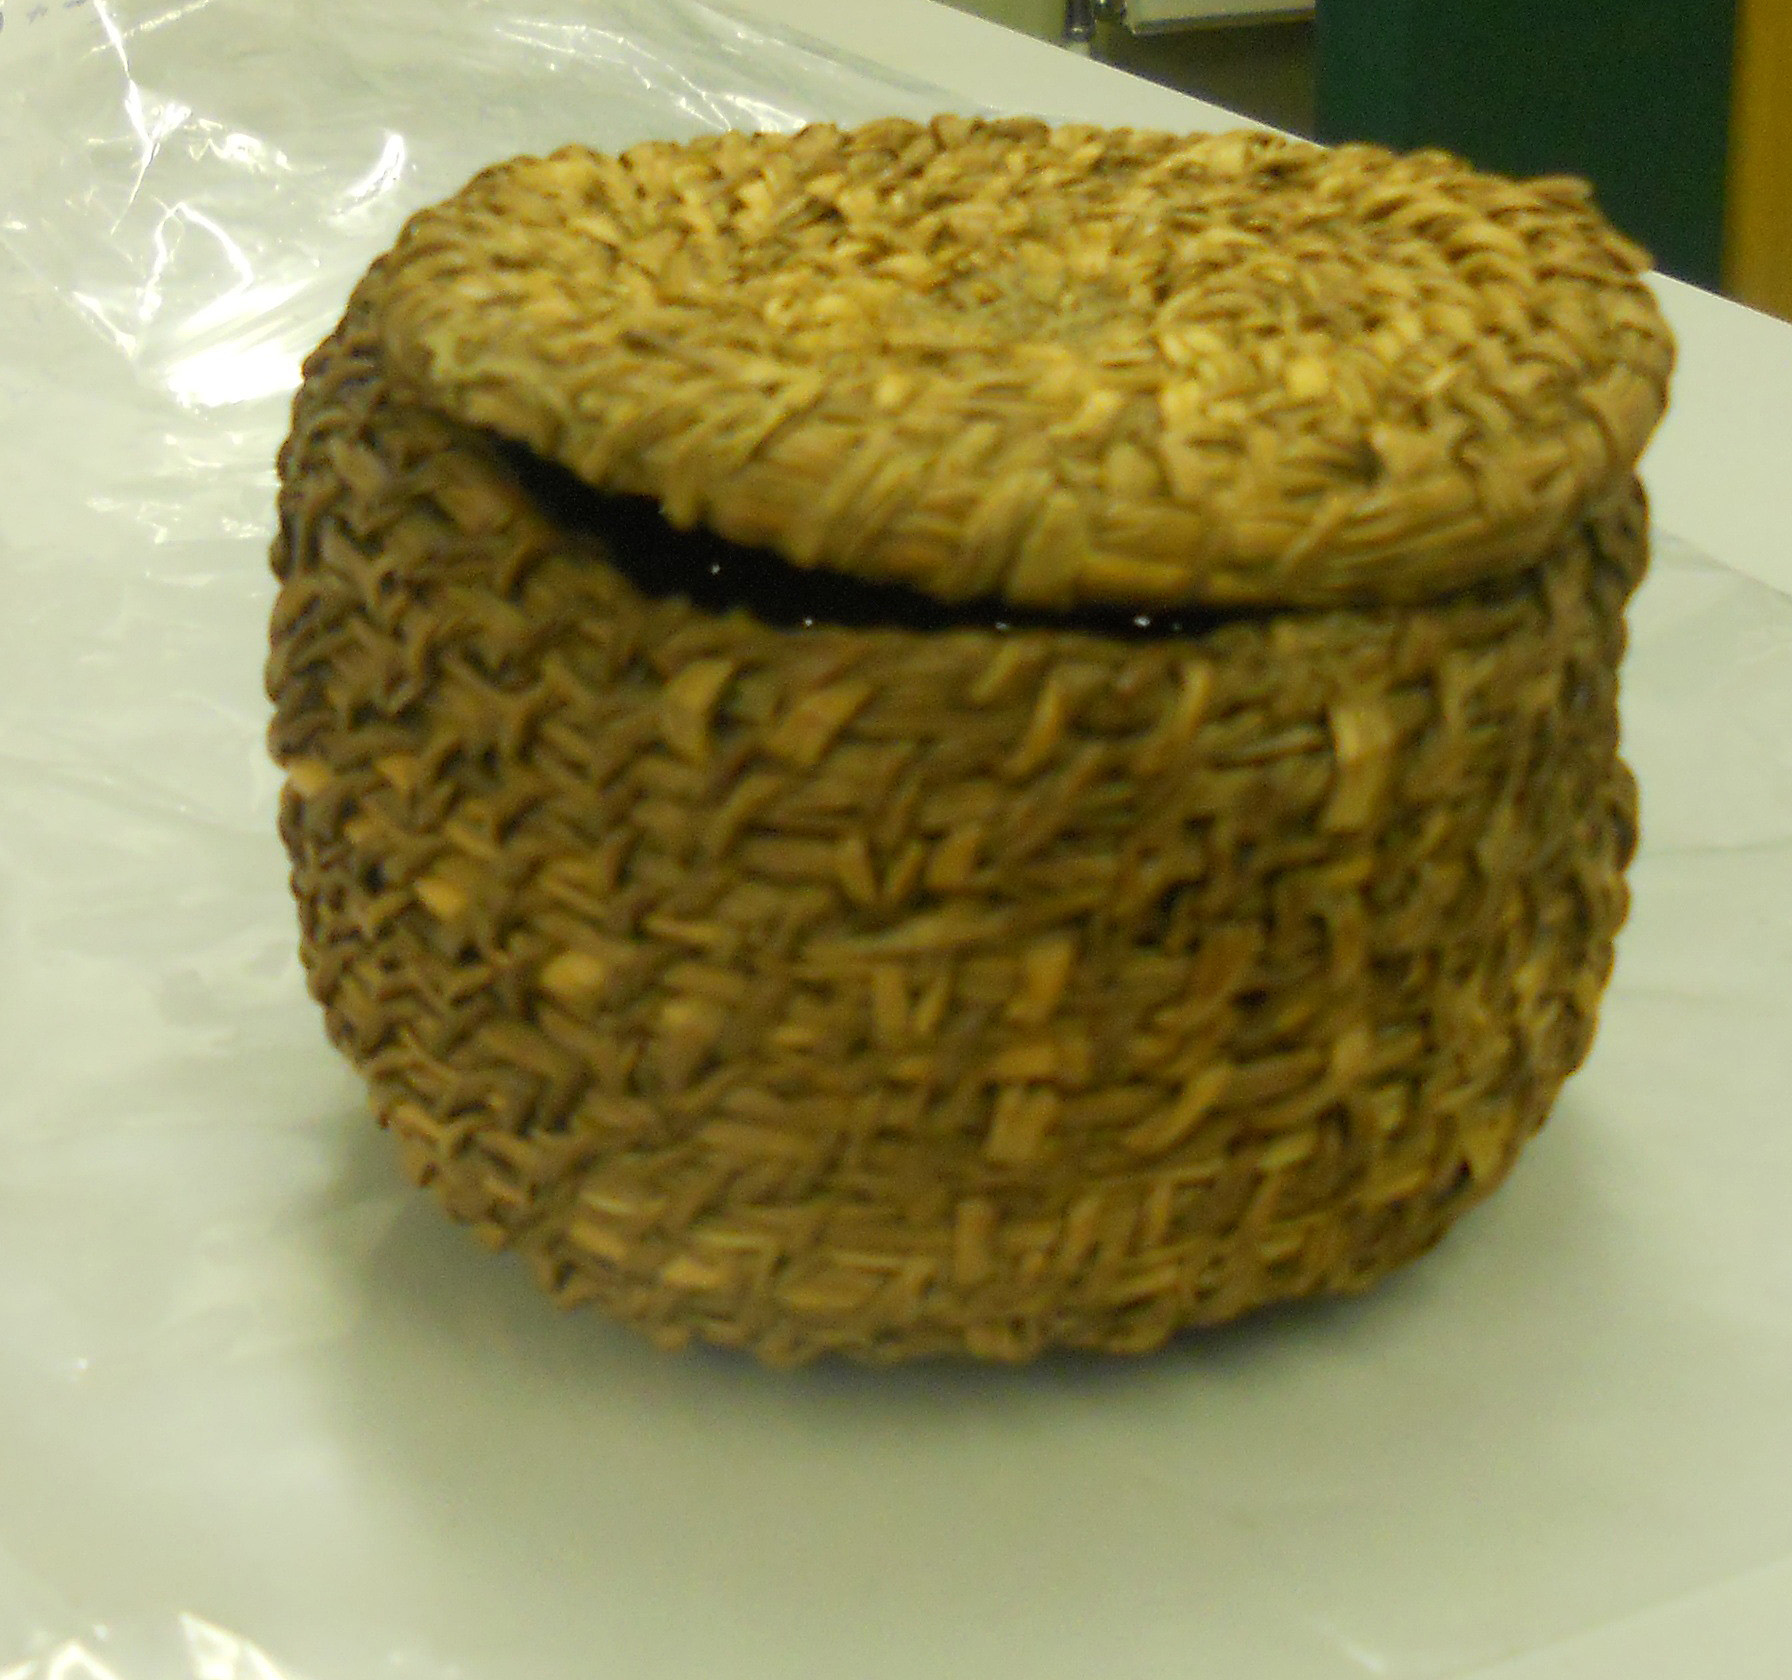 Coiled soft (field) rush basket, Dumfries Museum JG 55.1965.106